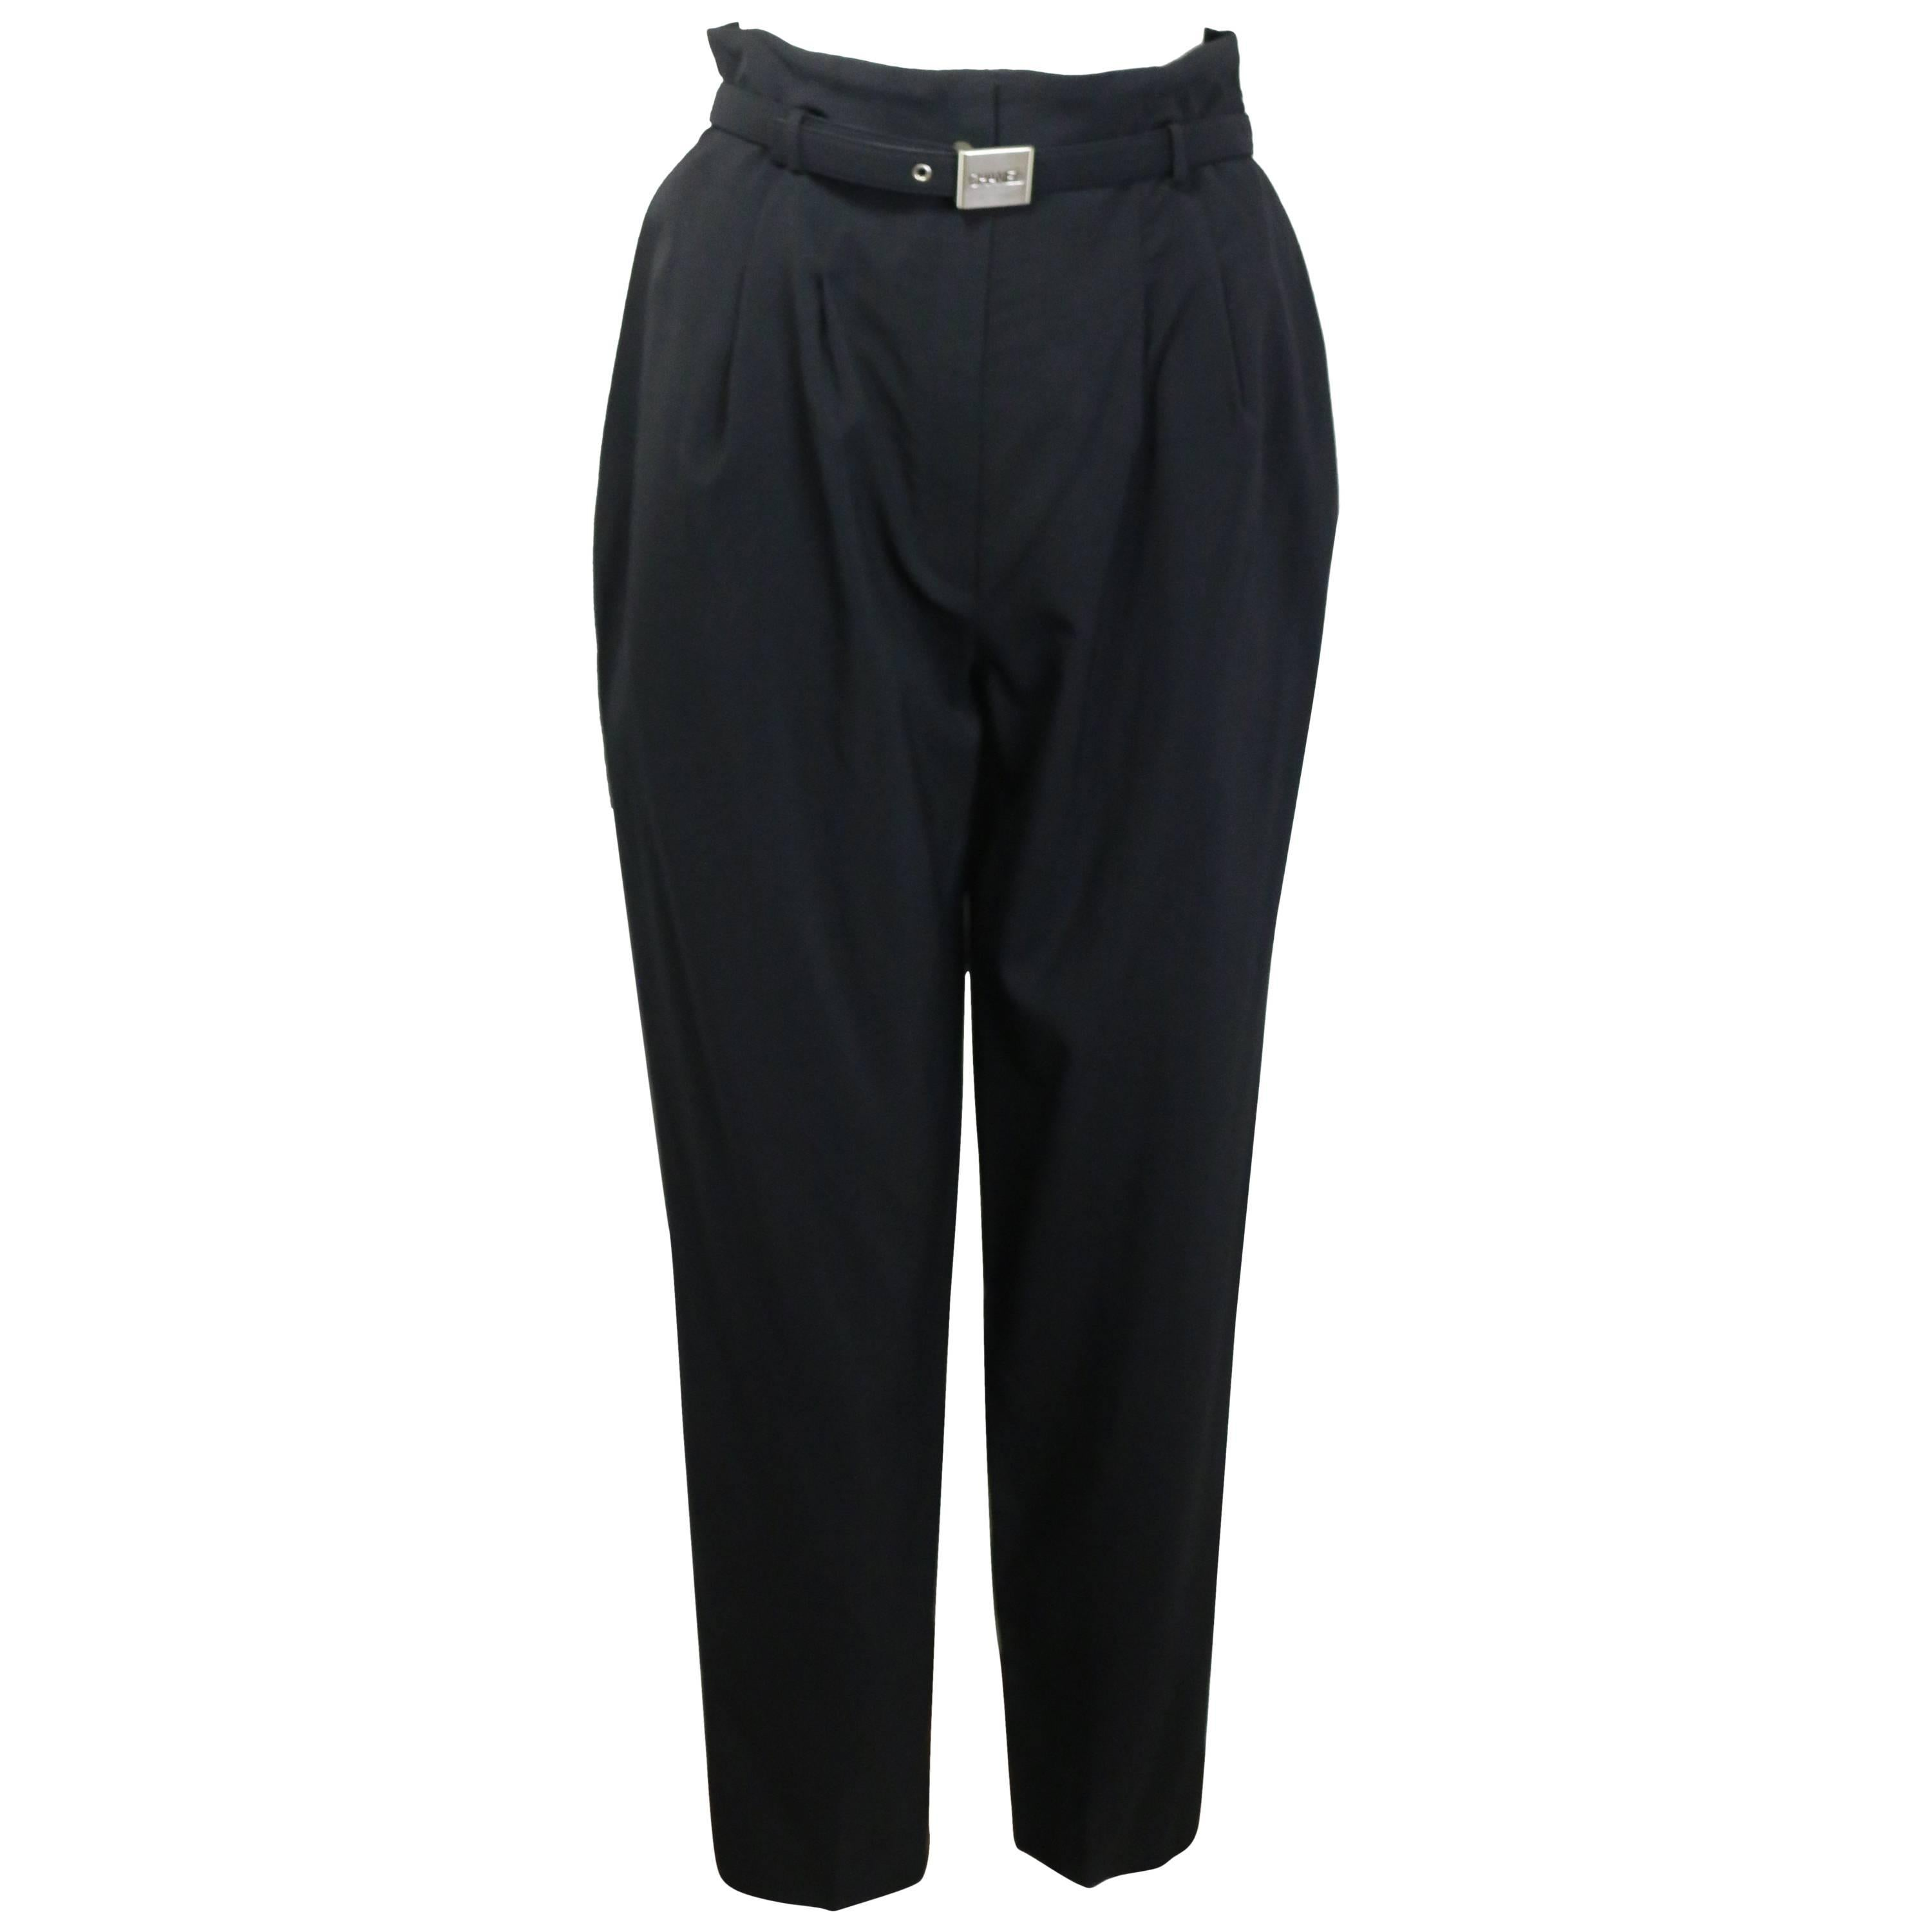 Chanel Black Wool Carrot Belted Pants